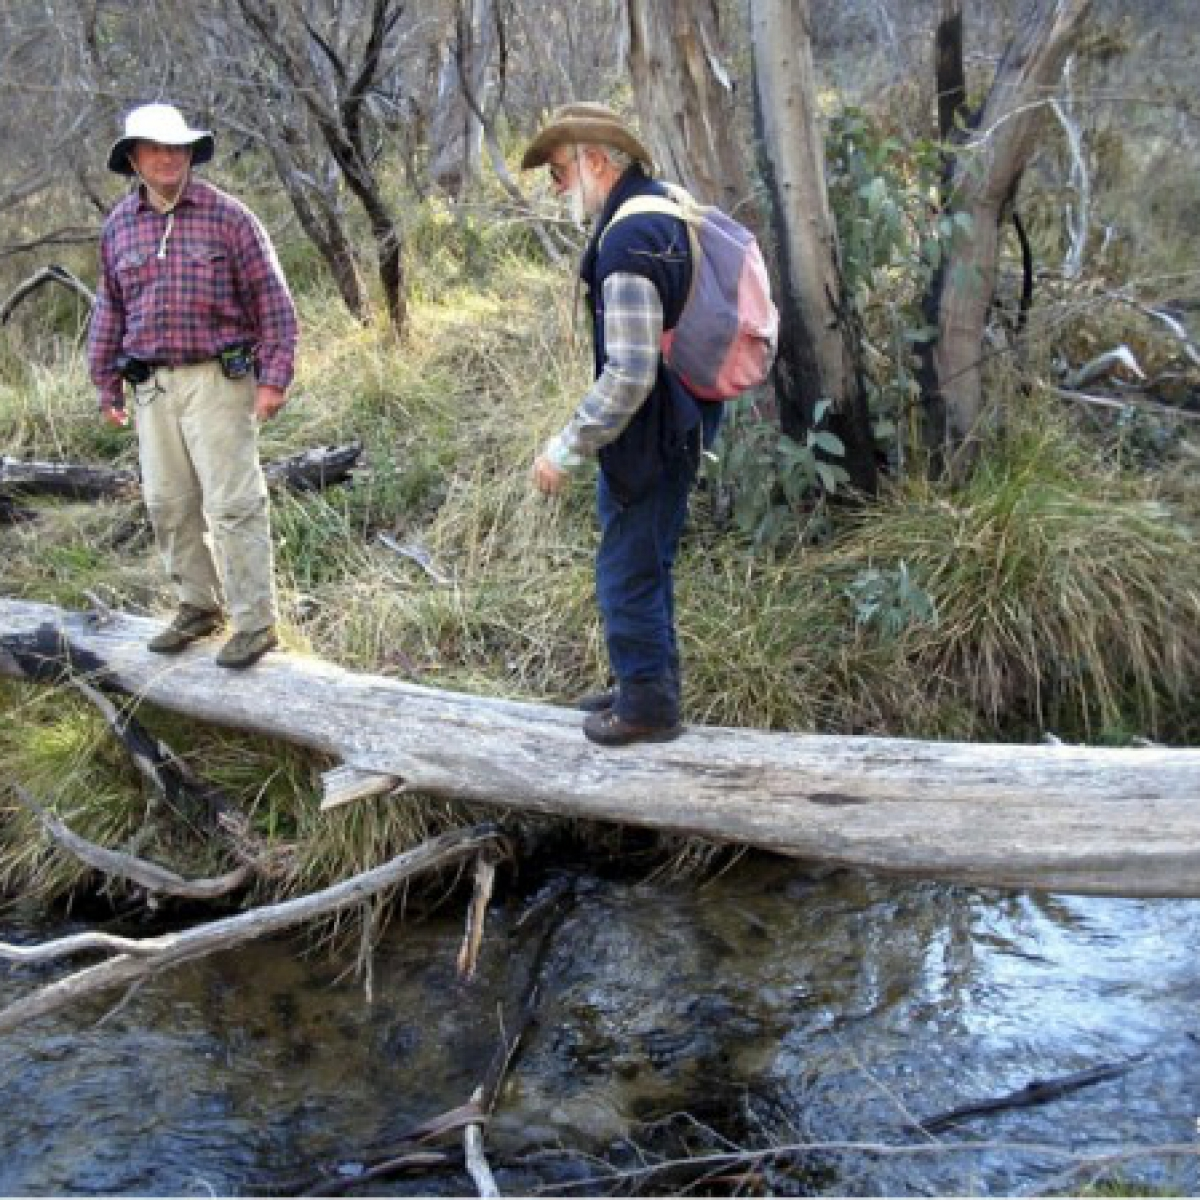 Once more Kevin, what's the password? - crossing Sams Creek - Namadgi National Park